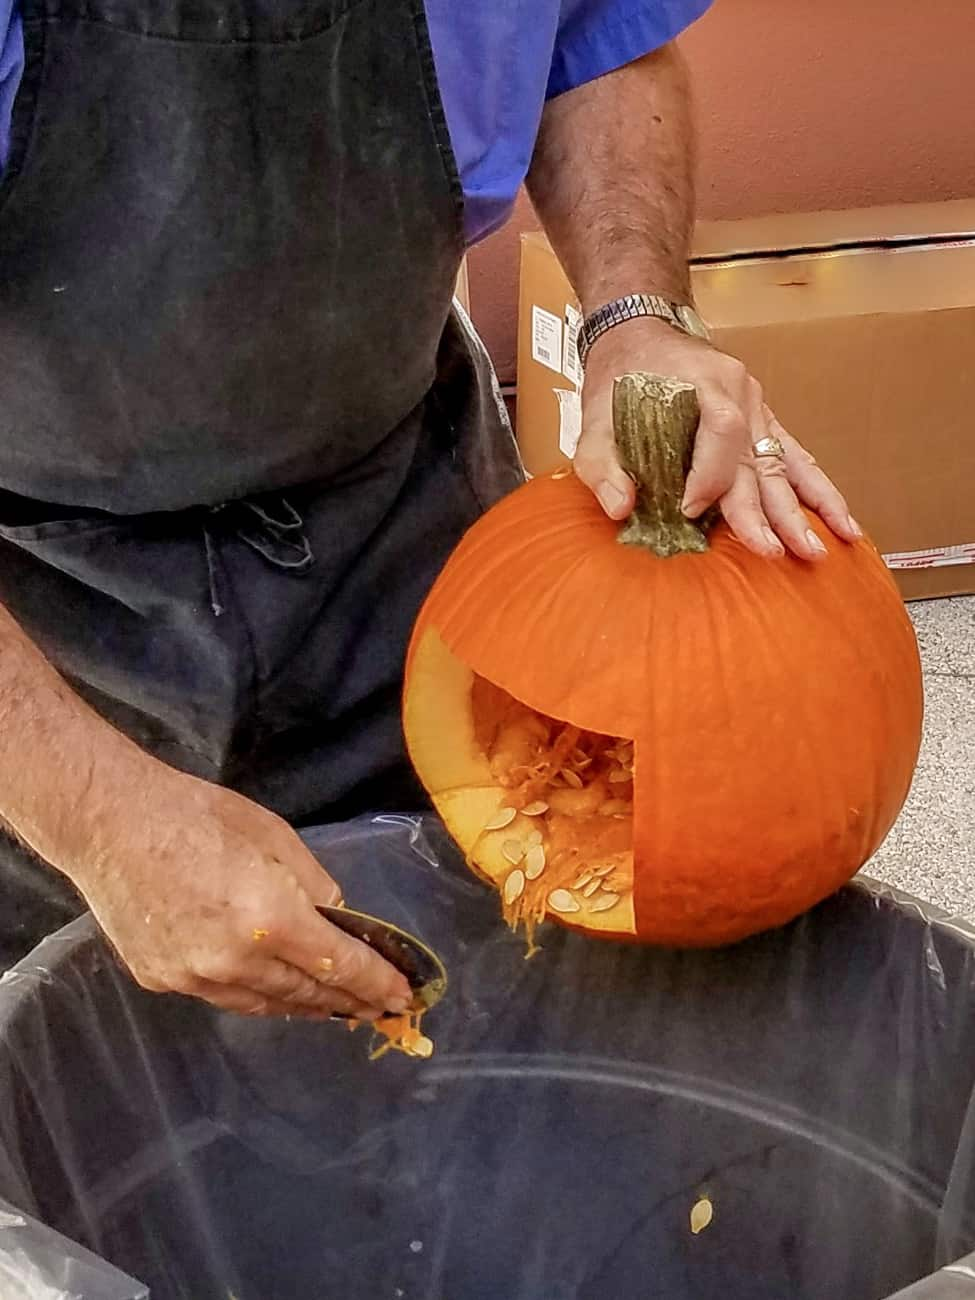 before using the Loki pumpkin stencil, man cleaning out seeds from a pumpkin